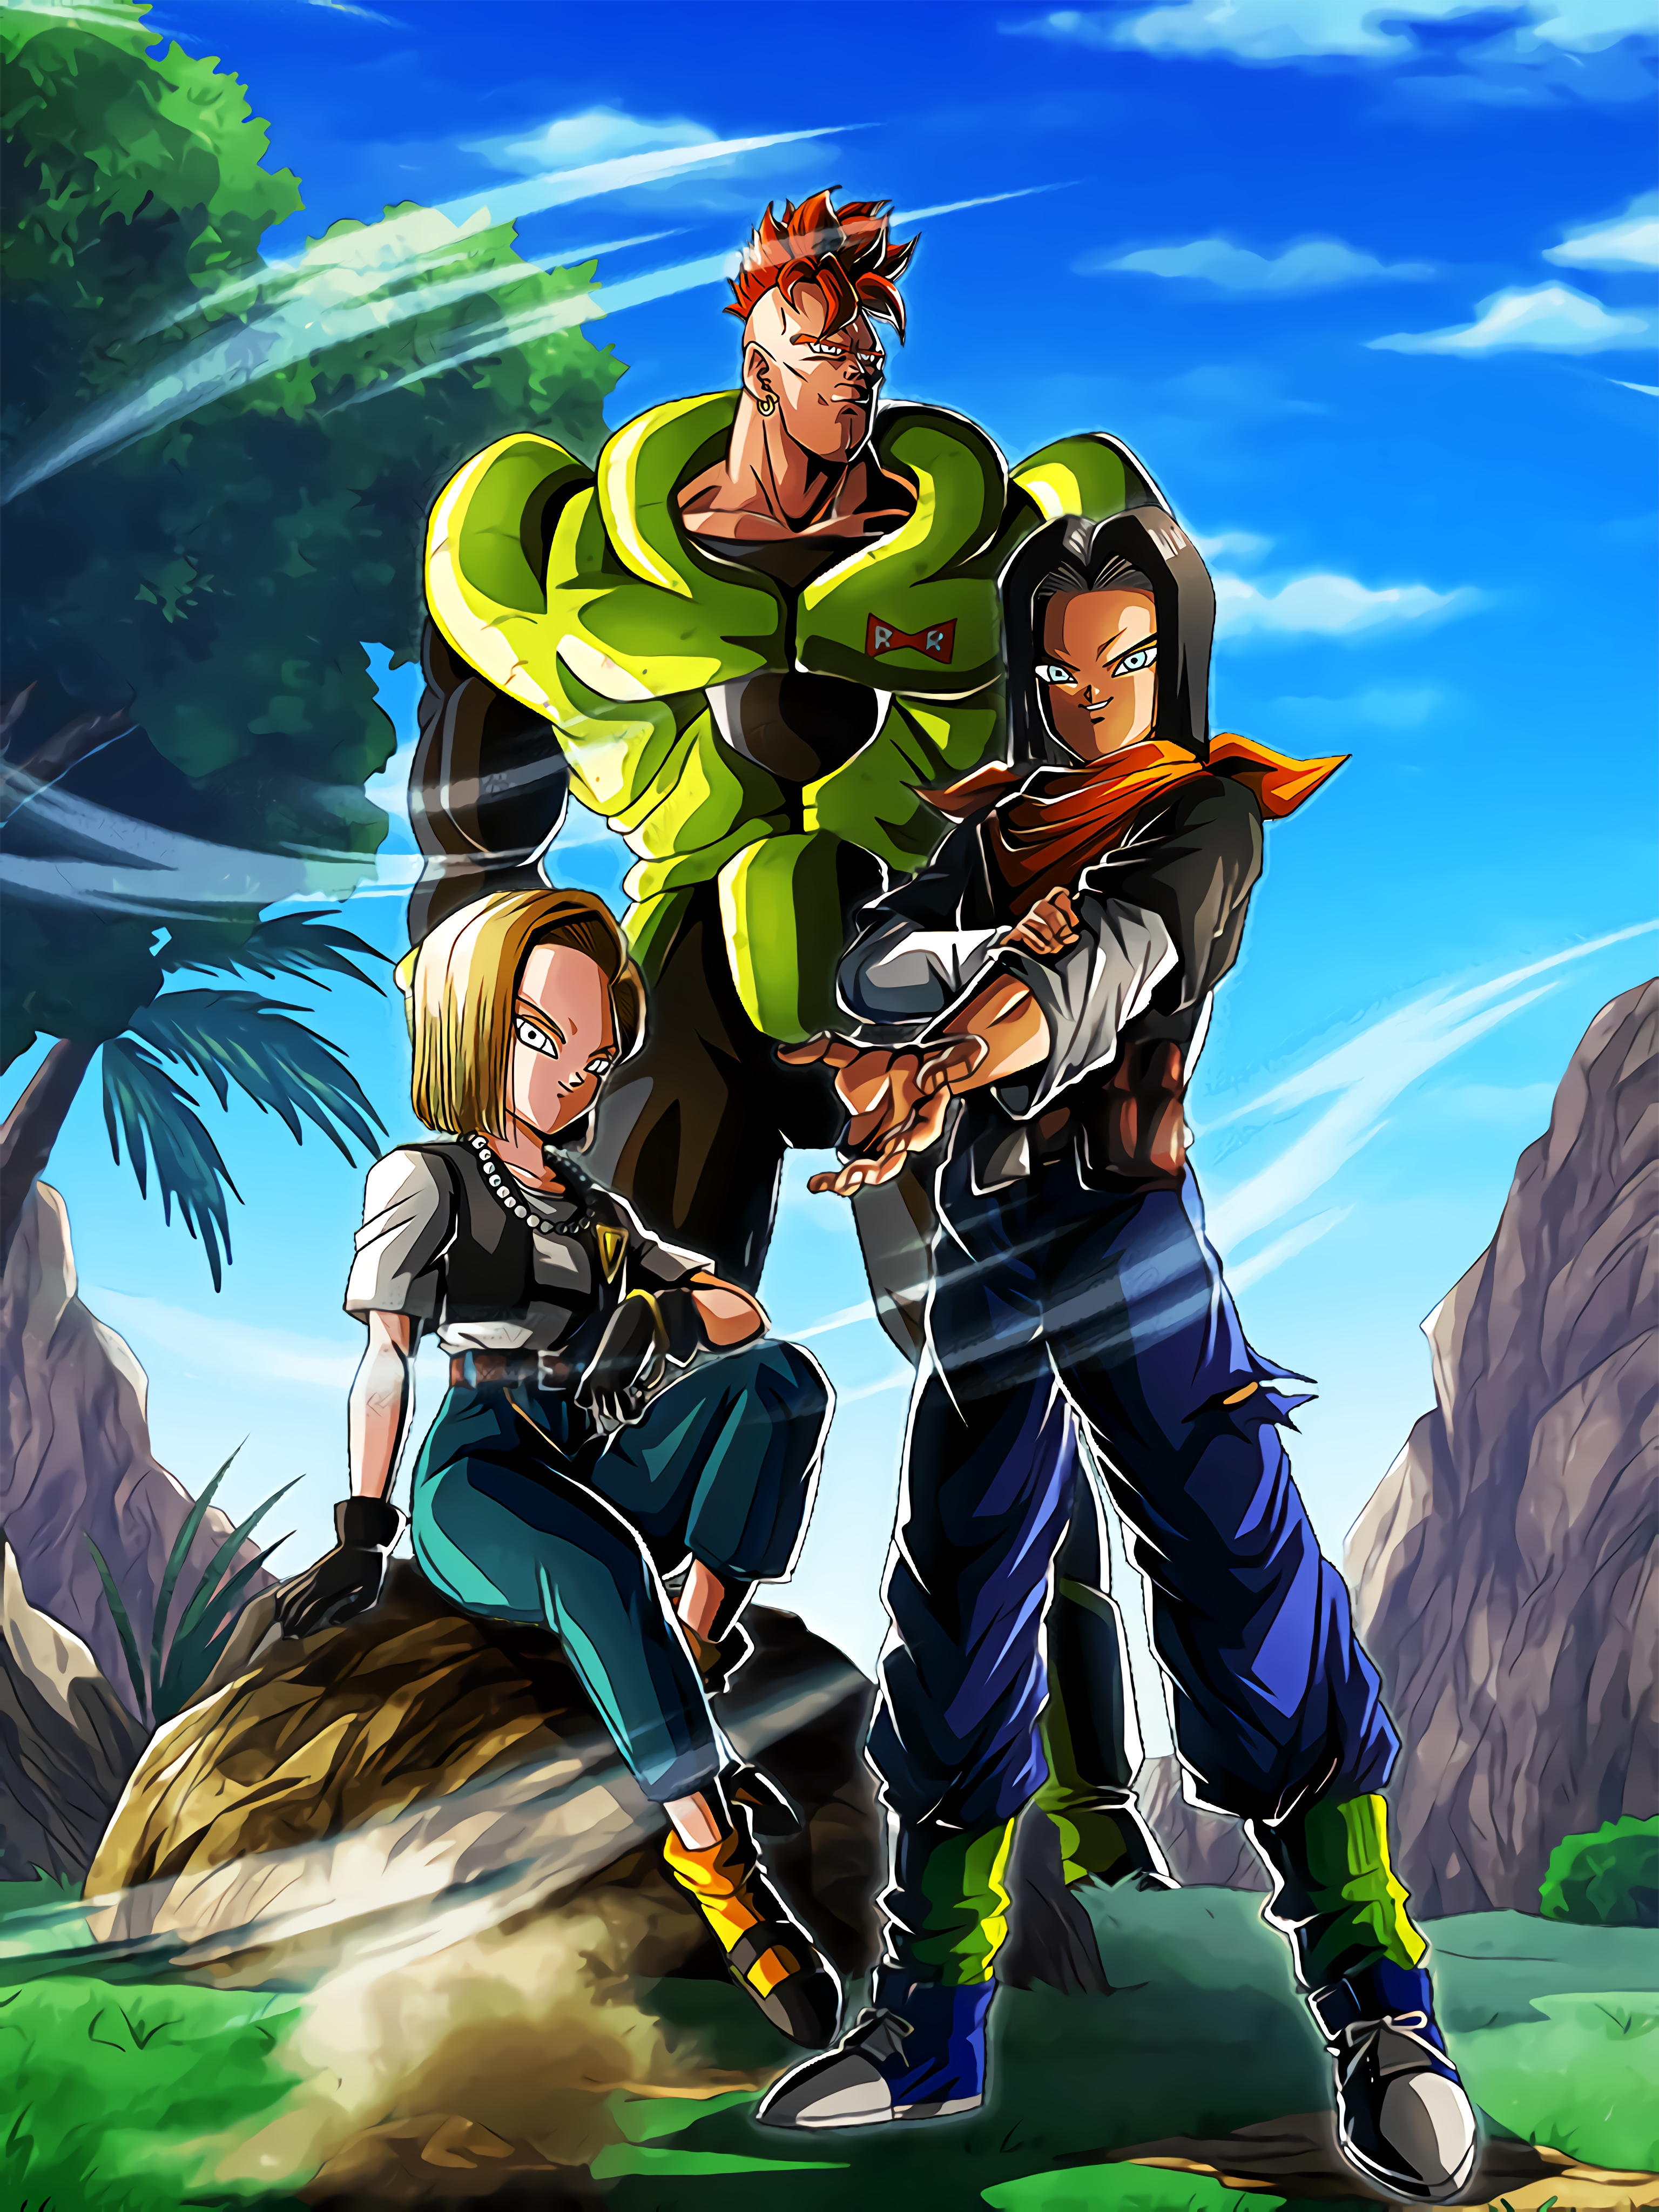 The Androids' Journey Androids #17 & #18 Android #16 Art (Dragon Ball Z Dokkan Battle).jpg